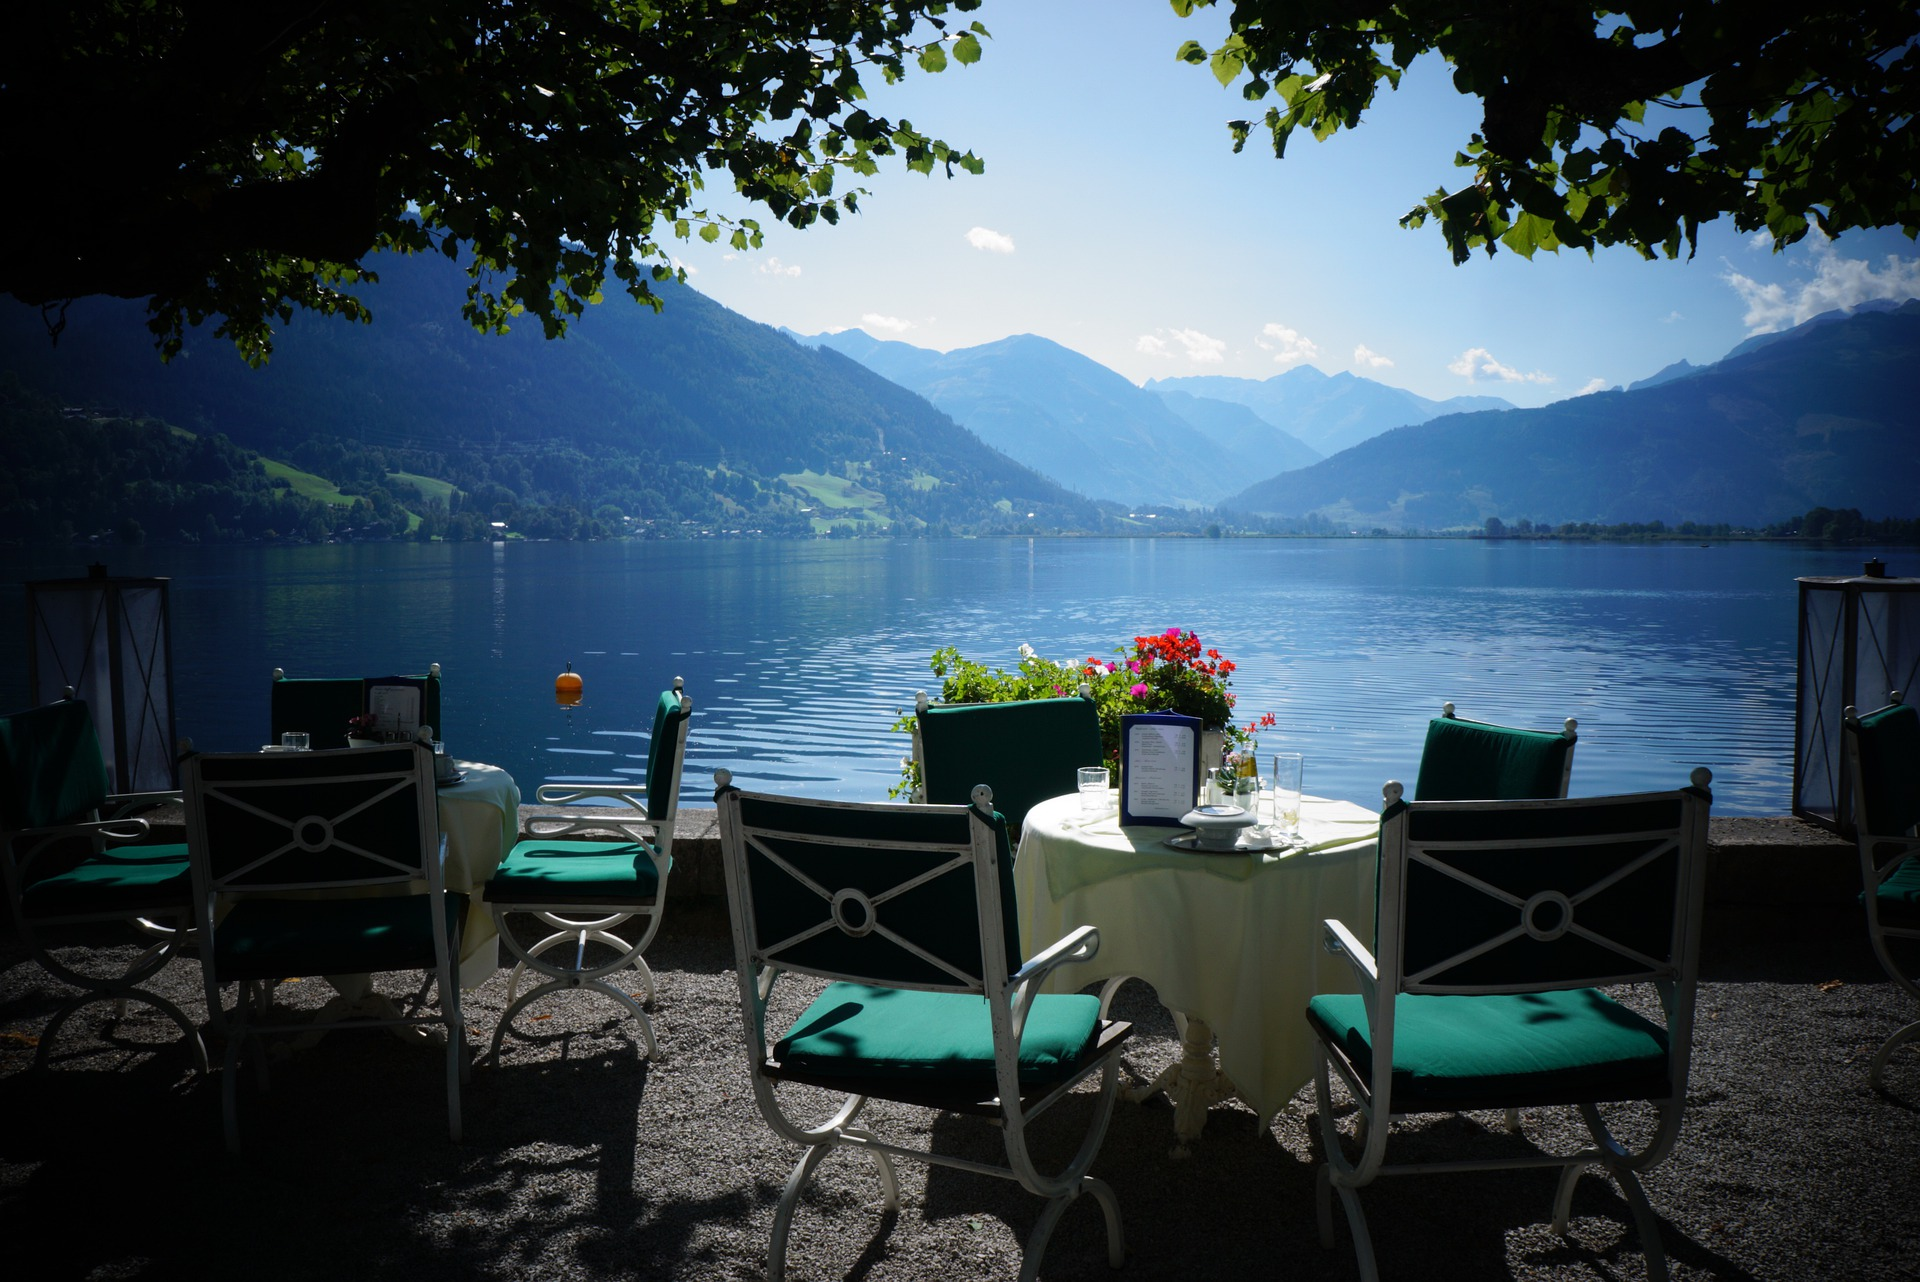 zell-am-see-4597795_1920